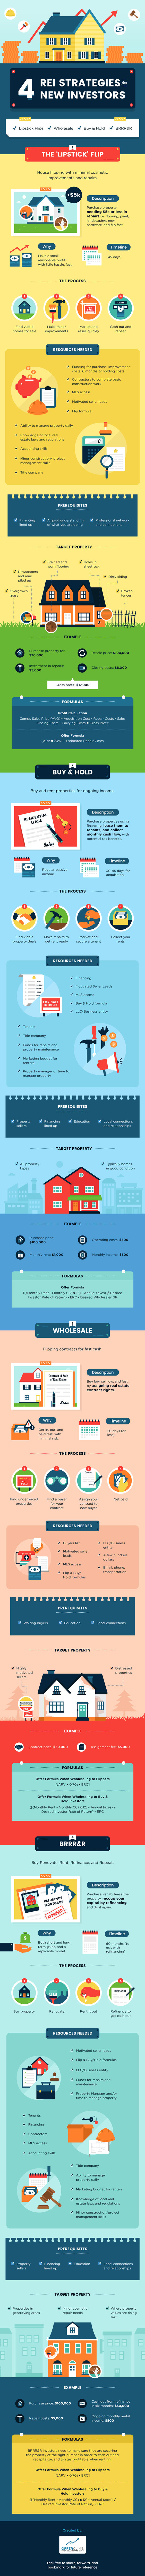 Real estate investing strategies infographic